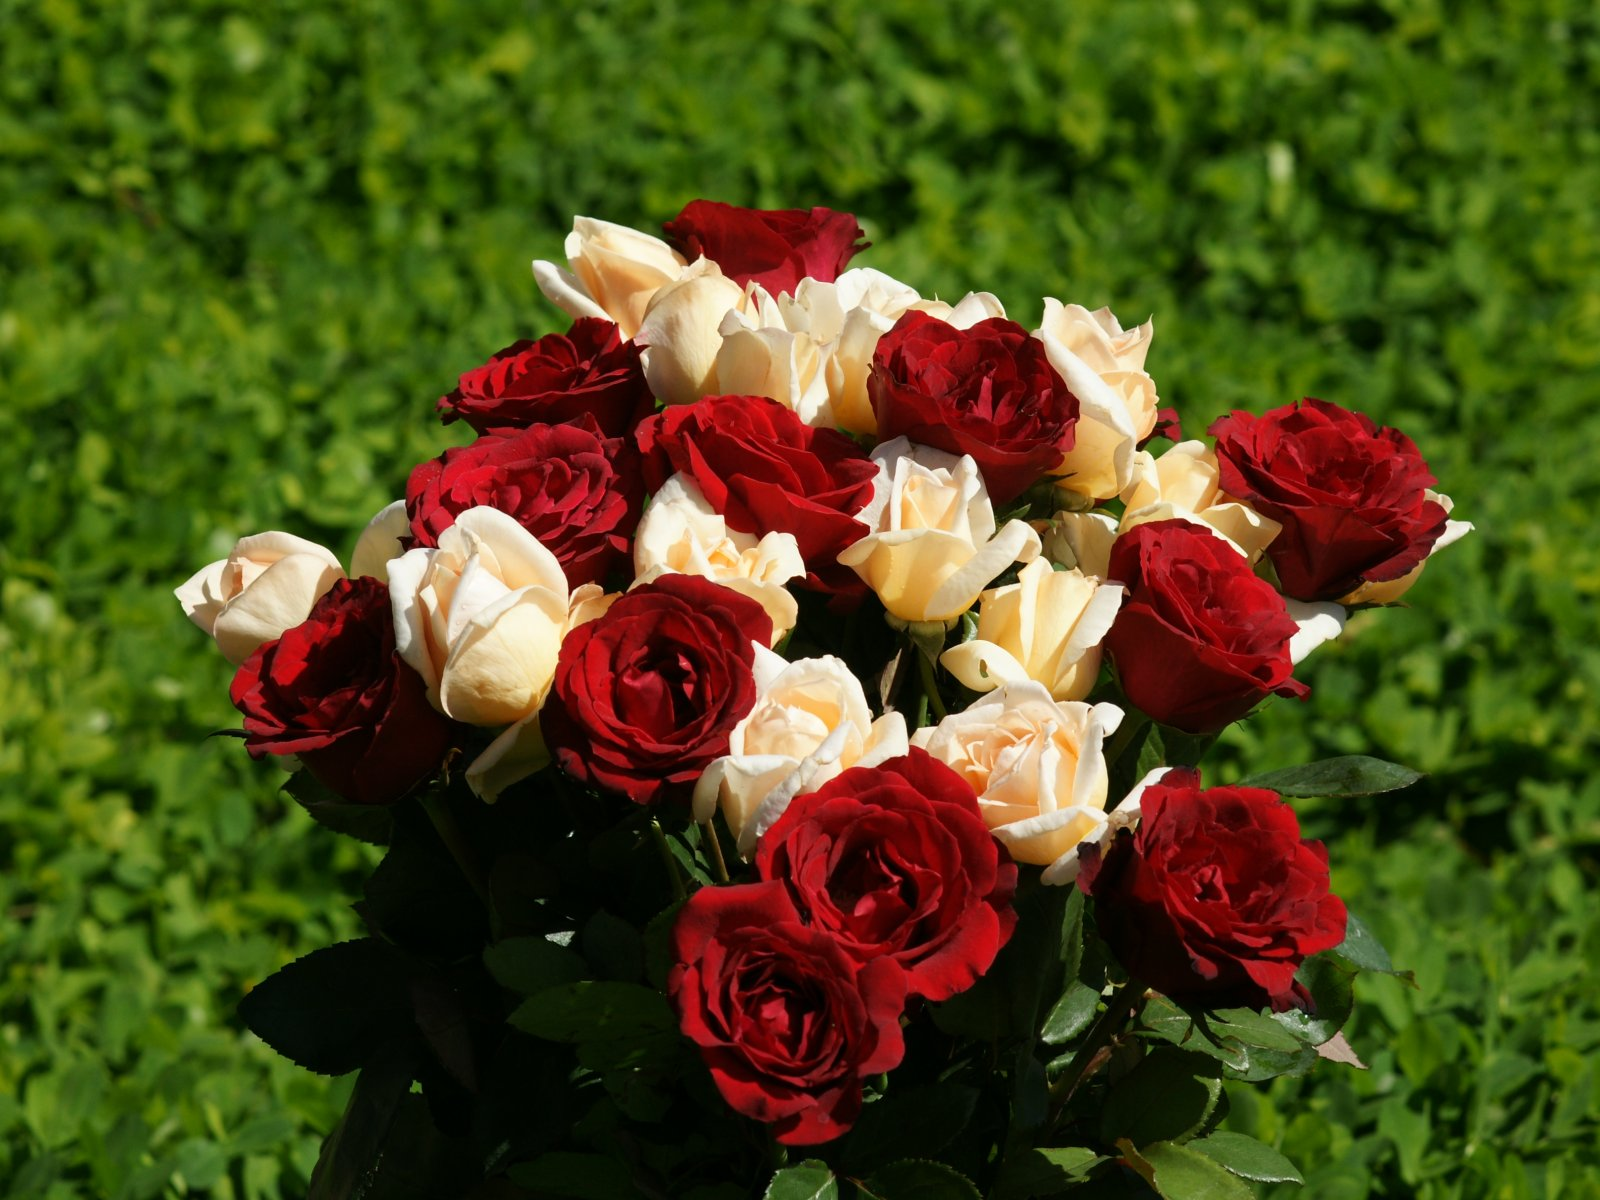 roses wallpapers hd rose wallpaper 21 bundle of red and white roses 1600x1200